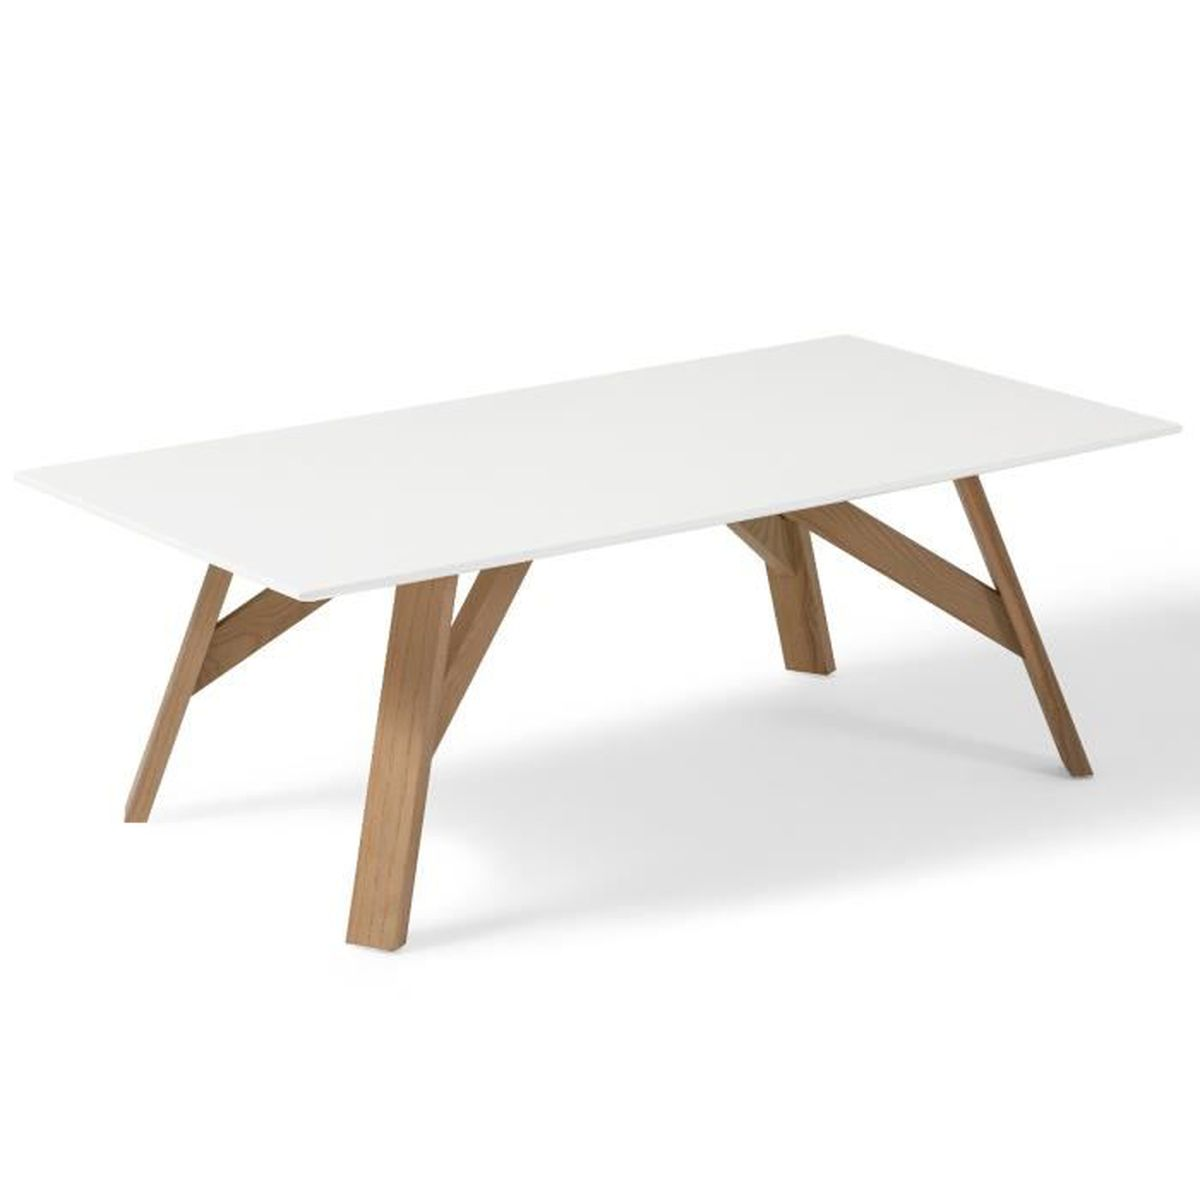 table basse design scandinave tycka blanc et pied en fr ne 120 cm x 65 cm achat vente table. Black Bedroom Furniture Sets. Home Design Ideas